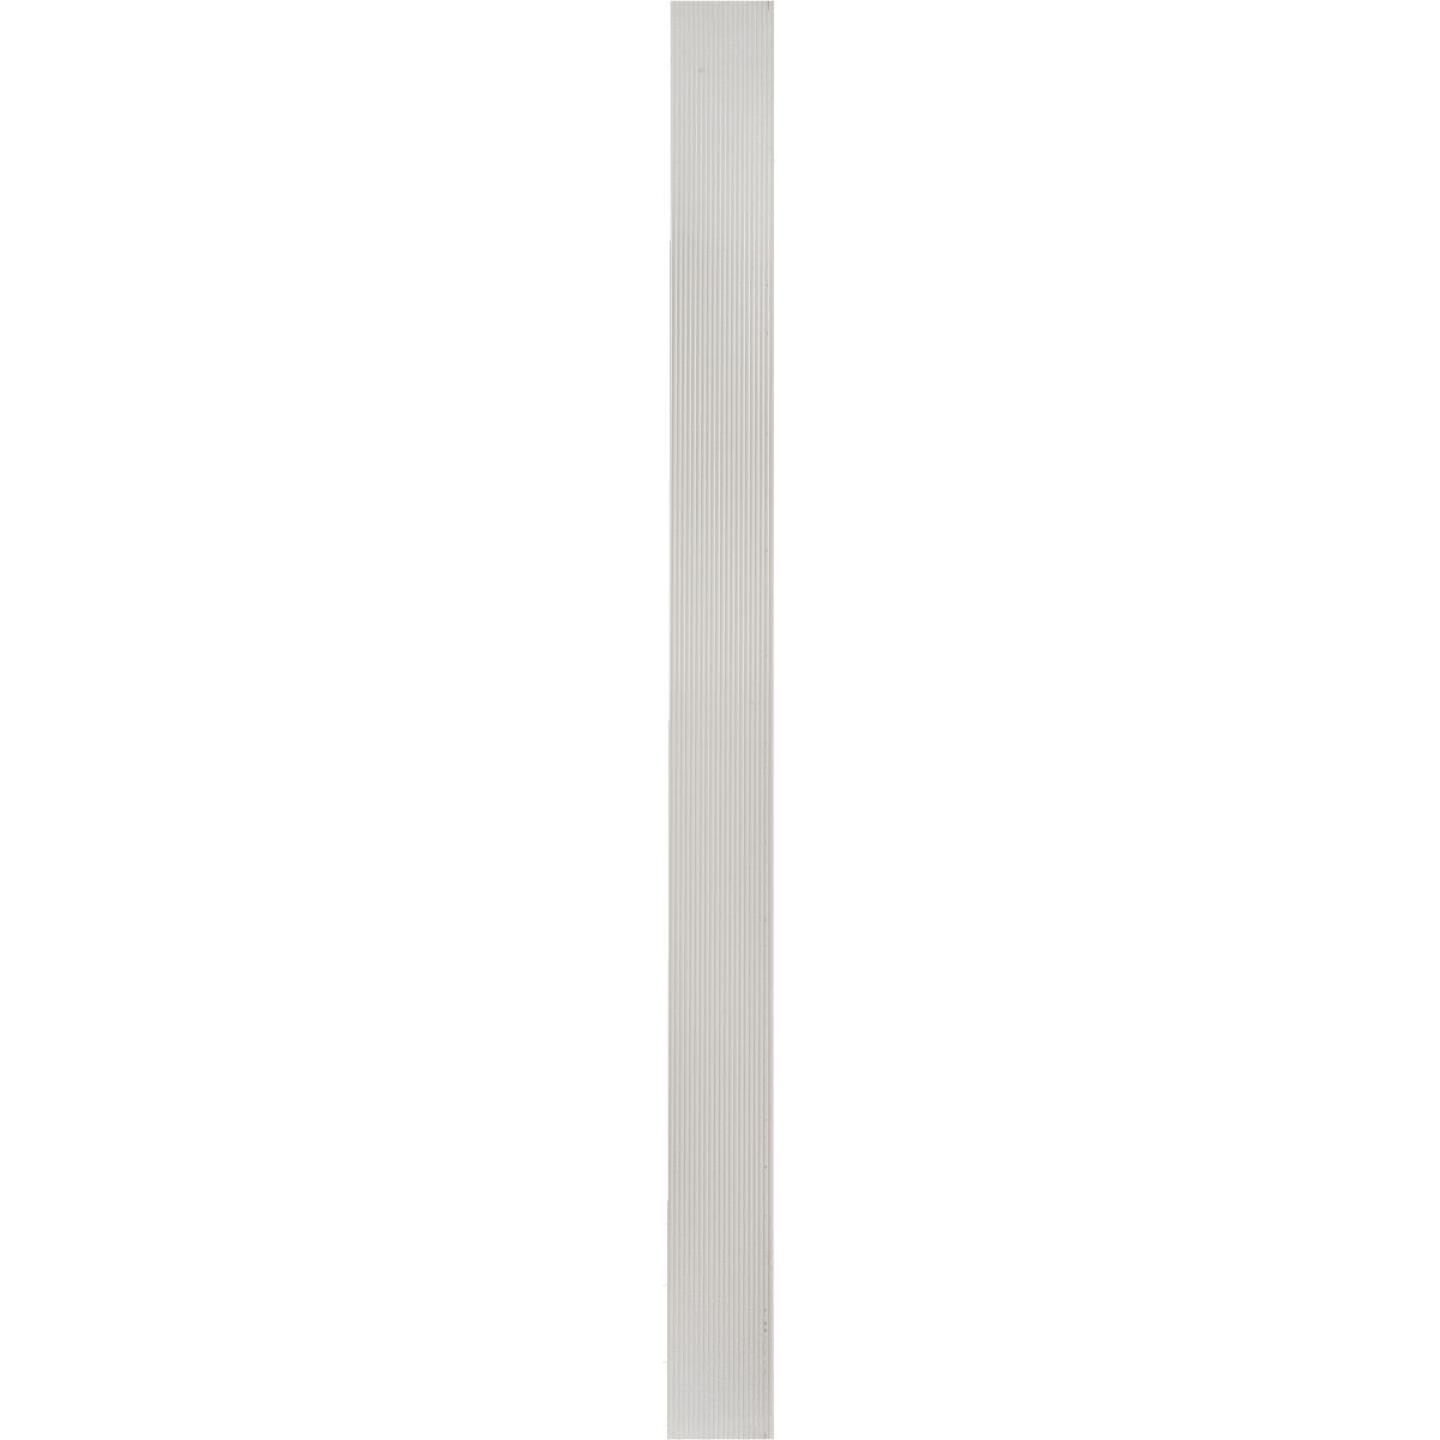 "M-D Ultra White 36"" x  2-3/4"" Sill Nosing Image 2"